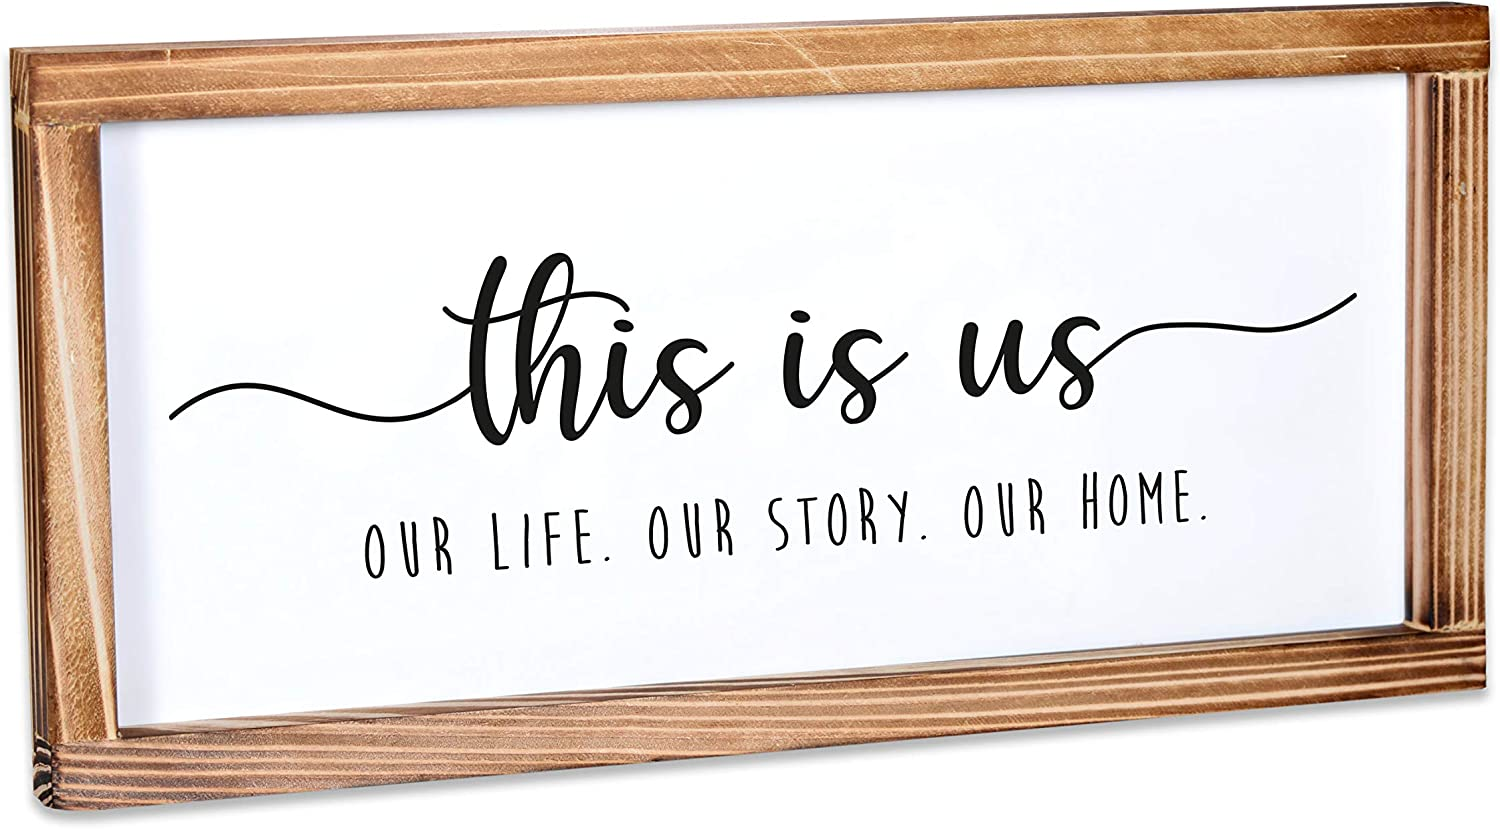 This Is Us Sign - Rustic Farmhouse Decor For The Home Sign - Wall Decorations For Living Room, Modern Farmhouse Wall Decor, Rustic Home Decor, Cute Room Decor With Solid Wood Frame - 8x17 Inch